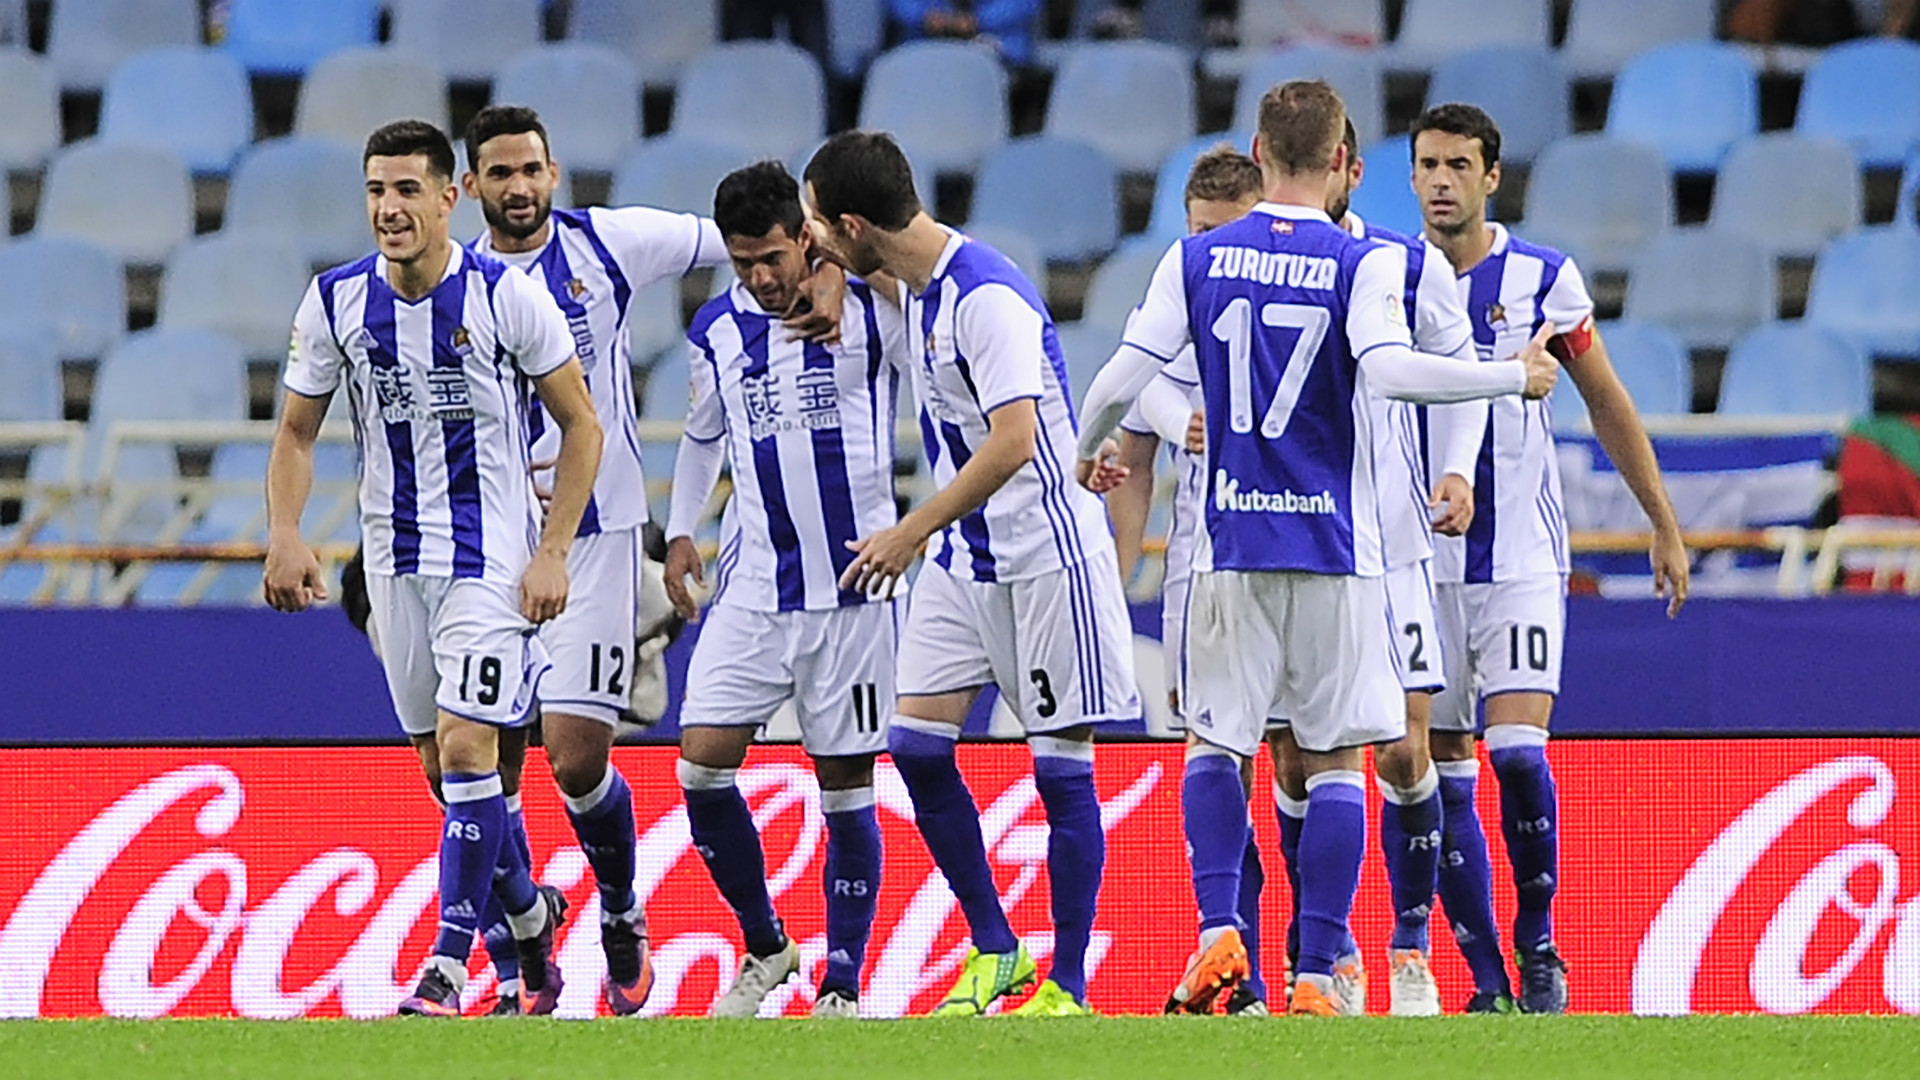 Real Sociedad Football Team